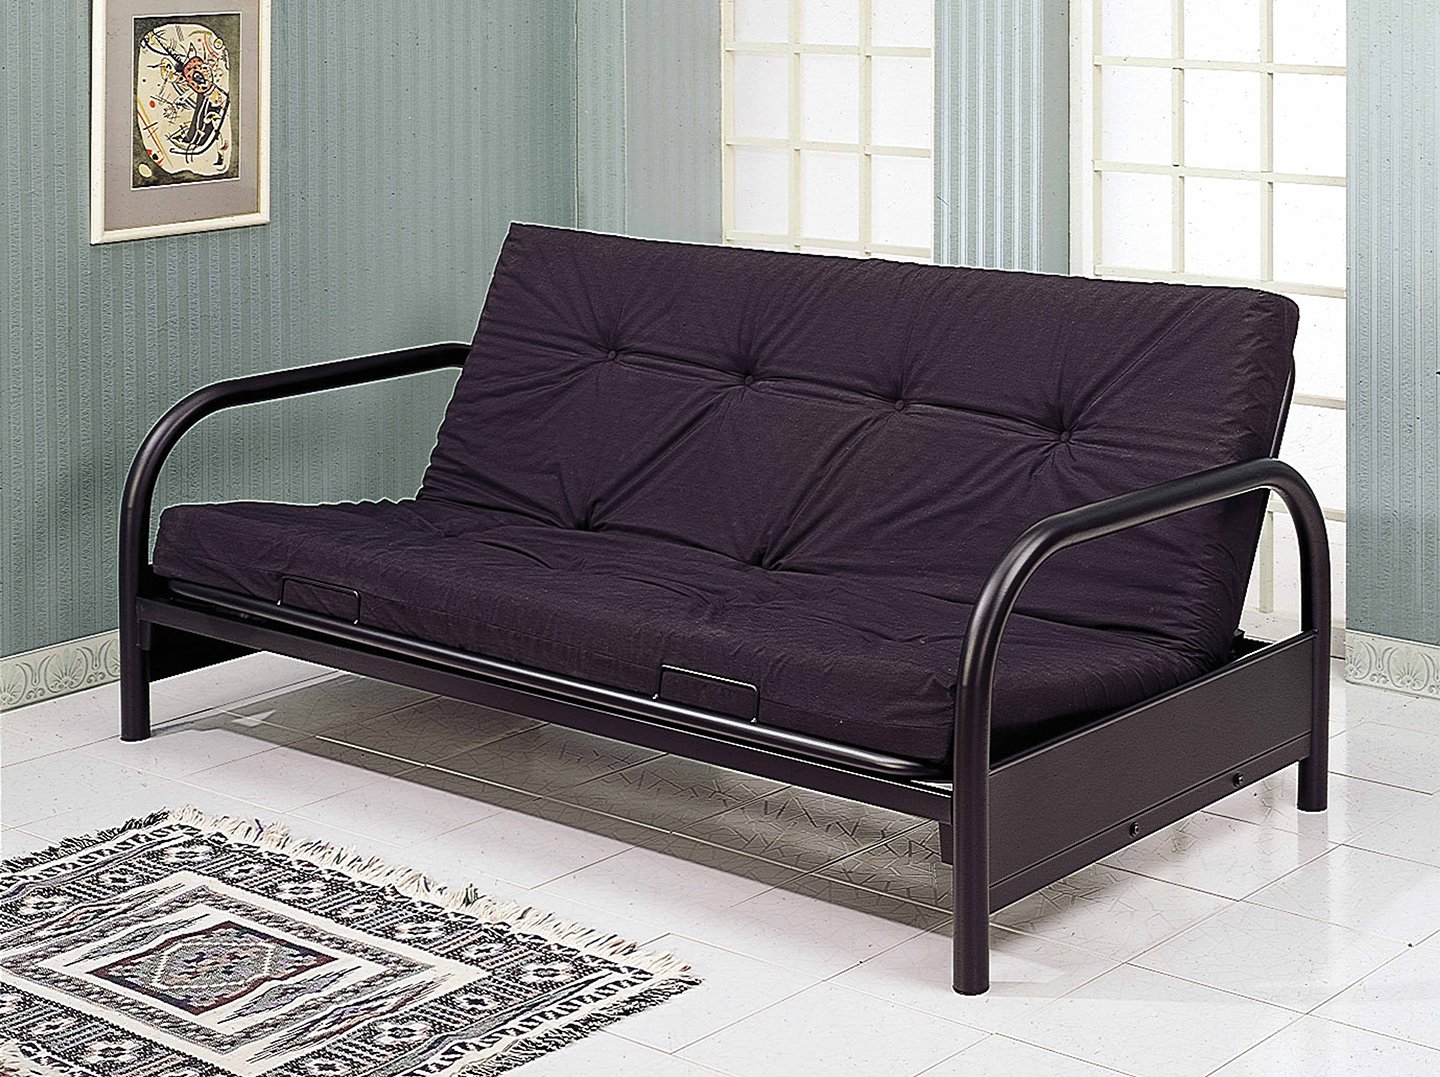 Black Full Size Futon Frame – AWFCO Catalog Site